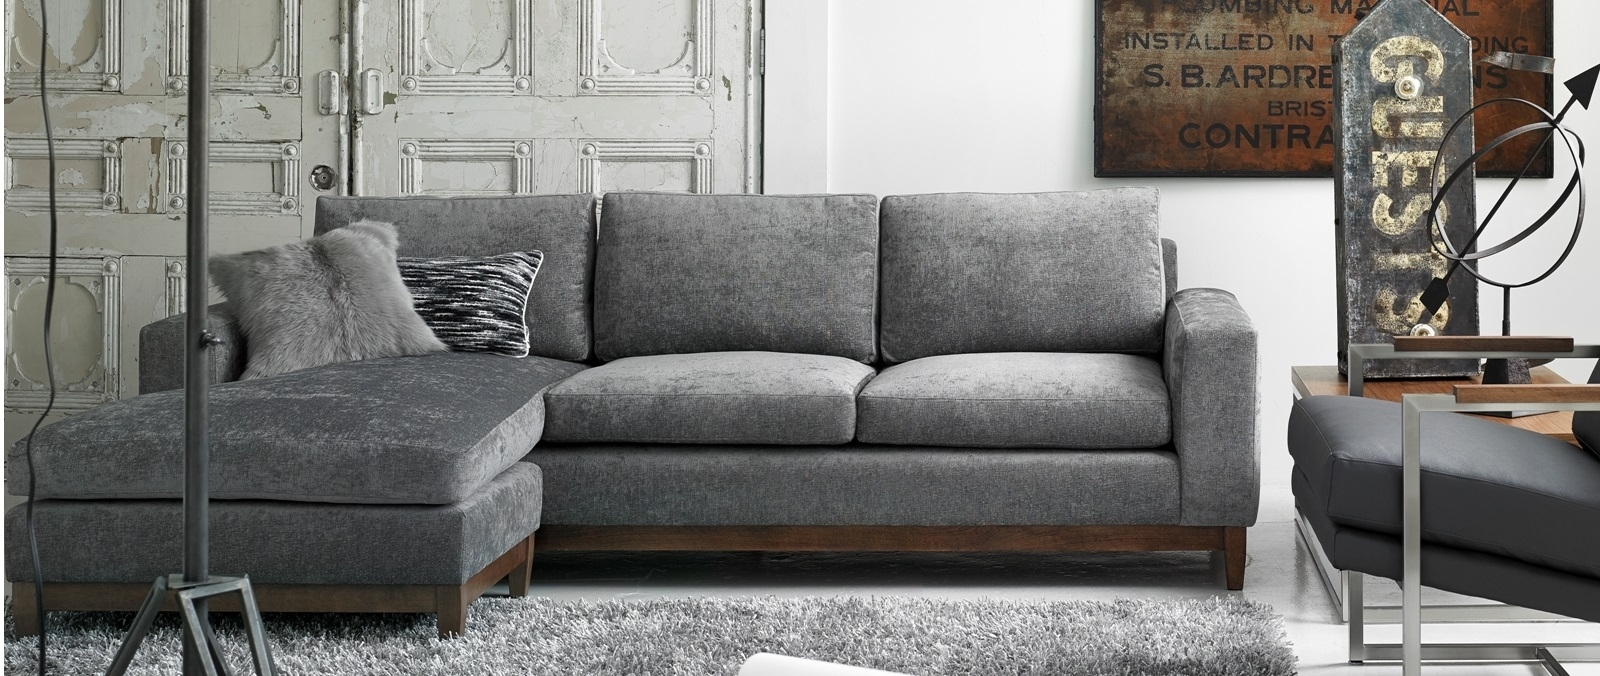 Modern Furniture Store Montreal And Ottawa | Mikazahome Throughout Ontario Canada Sectional Sofas (View 8 of 10)